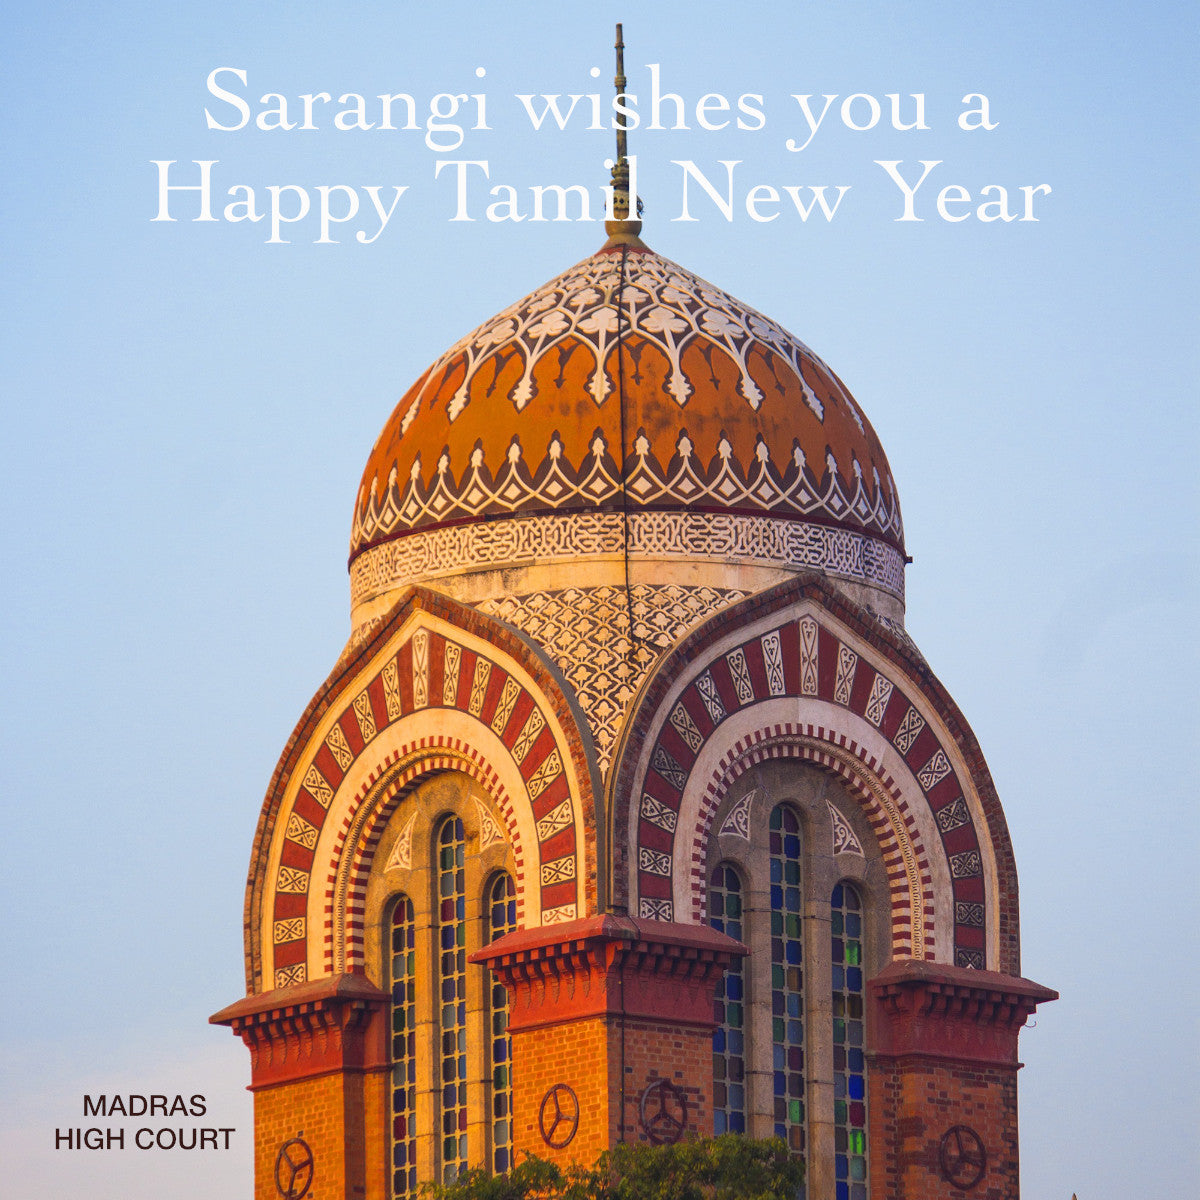 Sarangi Wishes You a Happy Tamil New Year